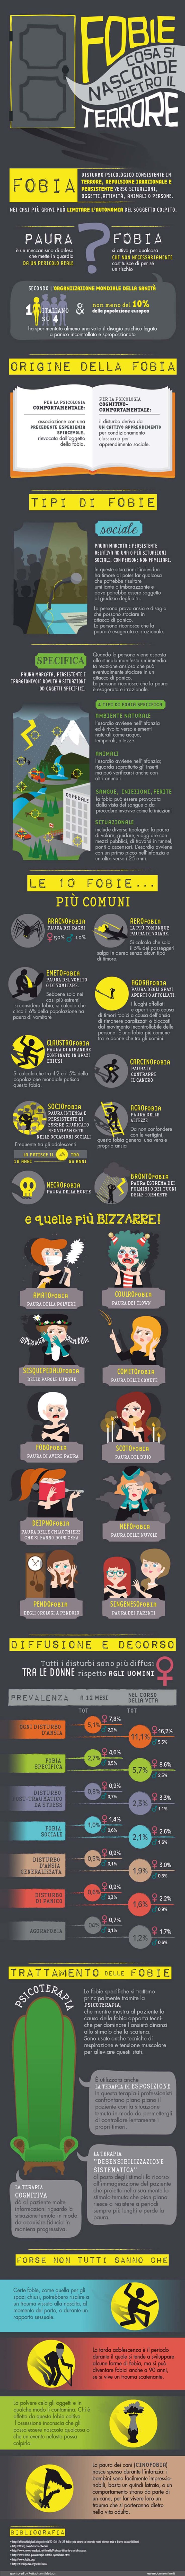 Infographic FOBIE COSA SI NASCONDE DIETRO IL TERRORE (PHOBIAS WHAT IS HIDING BEHIND THE TERROR) for Esseredonnaonline, graphic design by Kleland studio